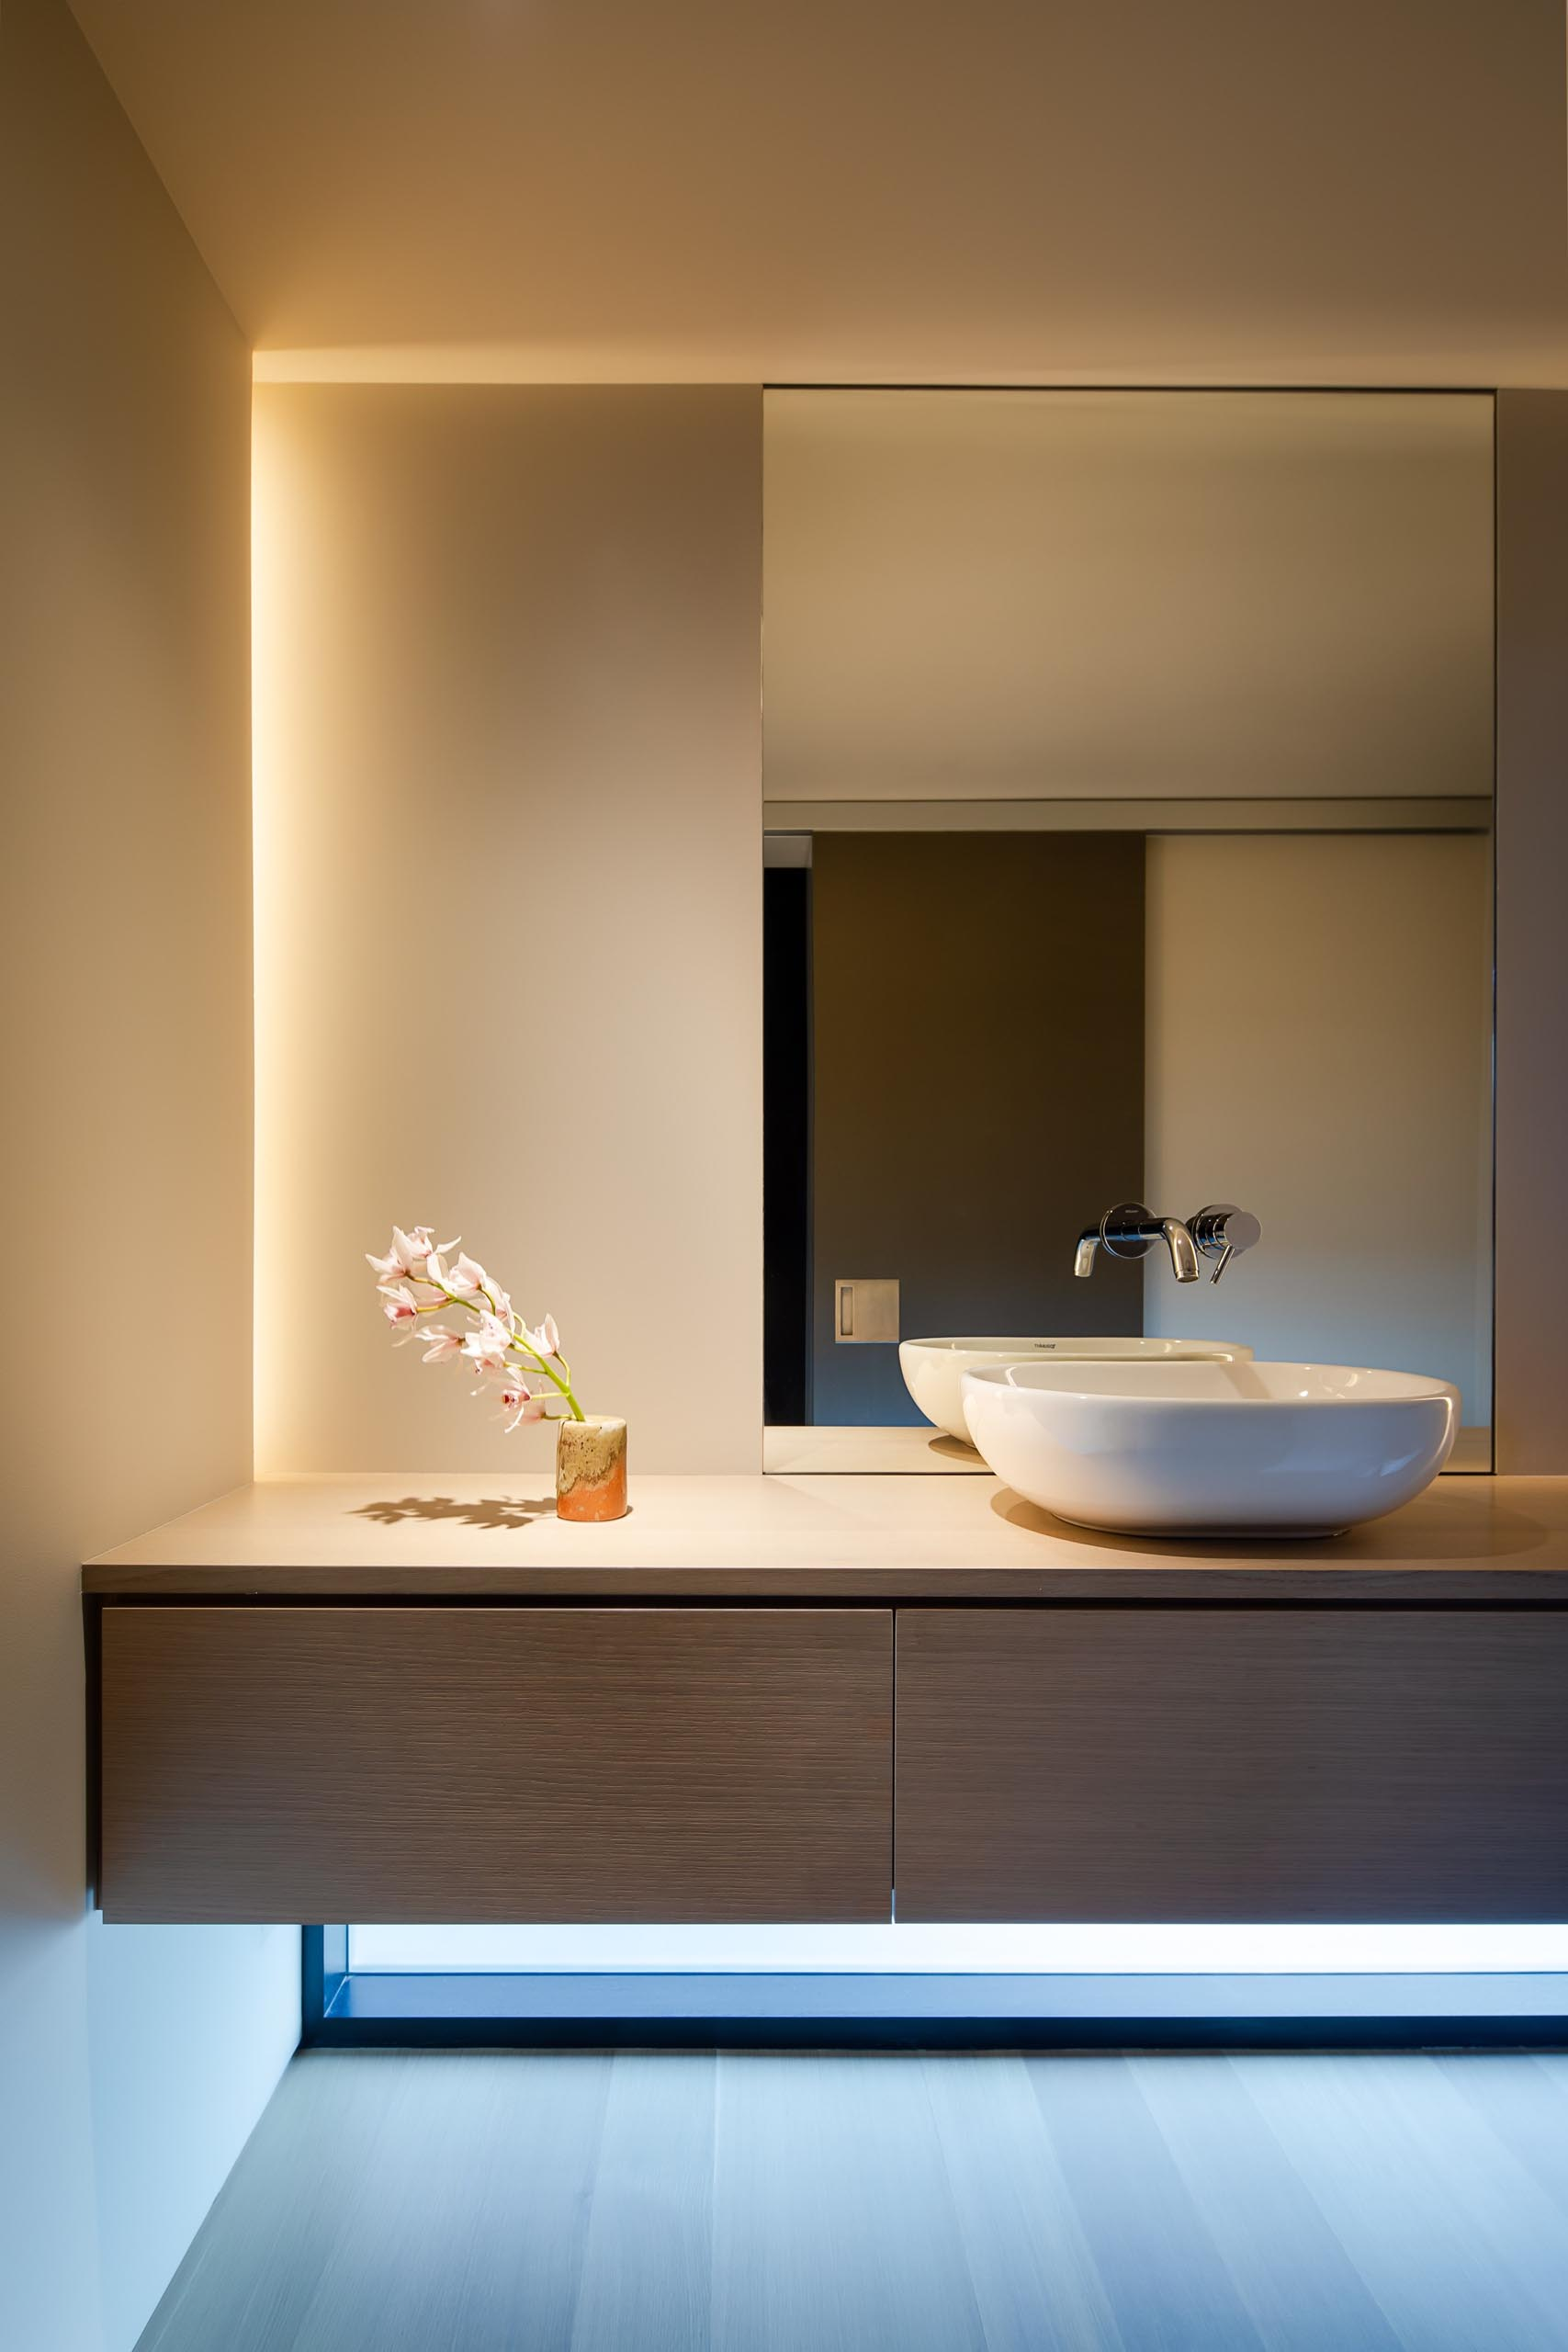 In this modern bathroom, there's a floating wood vanity with hidden lighting tucked away in the corner.